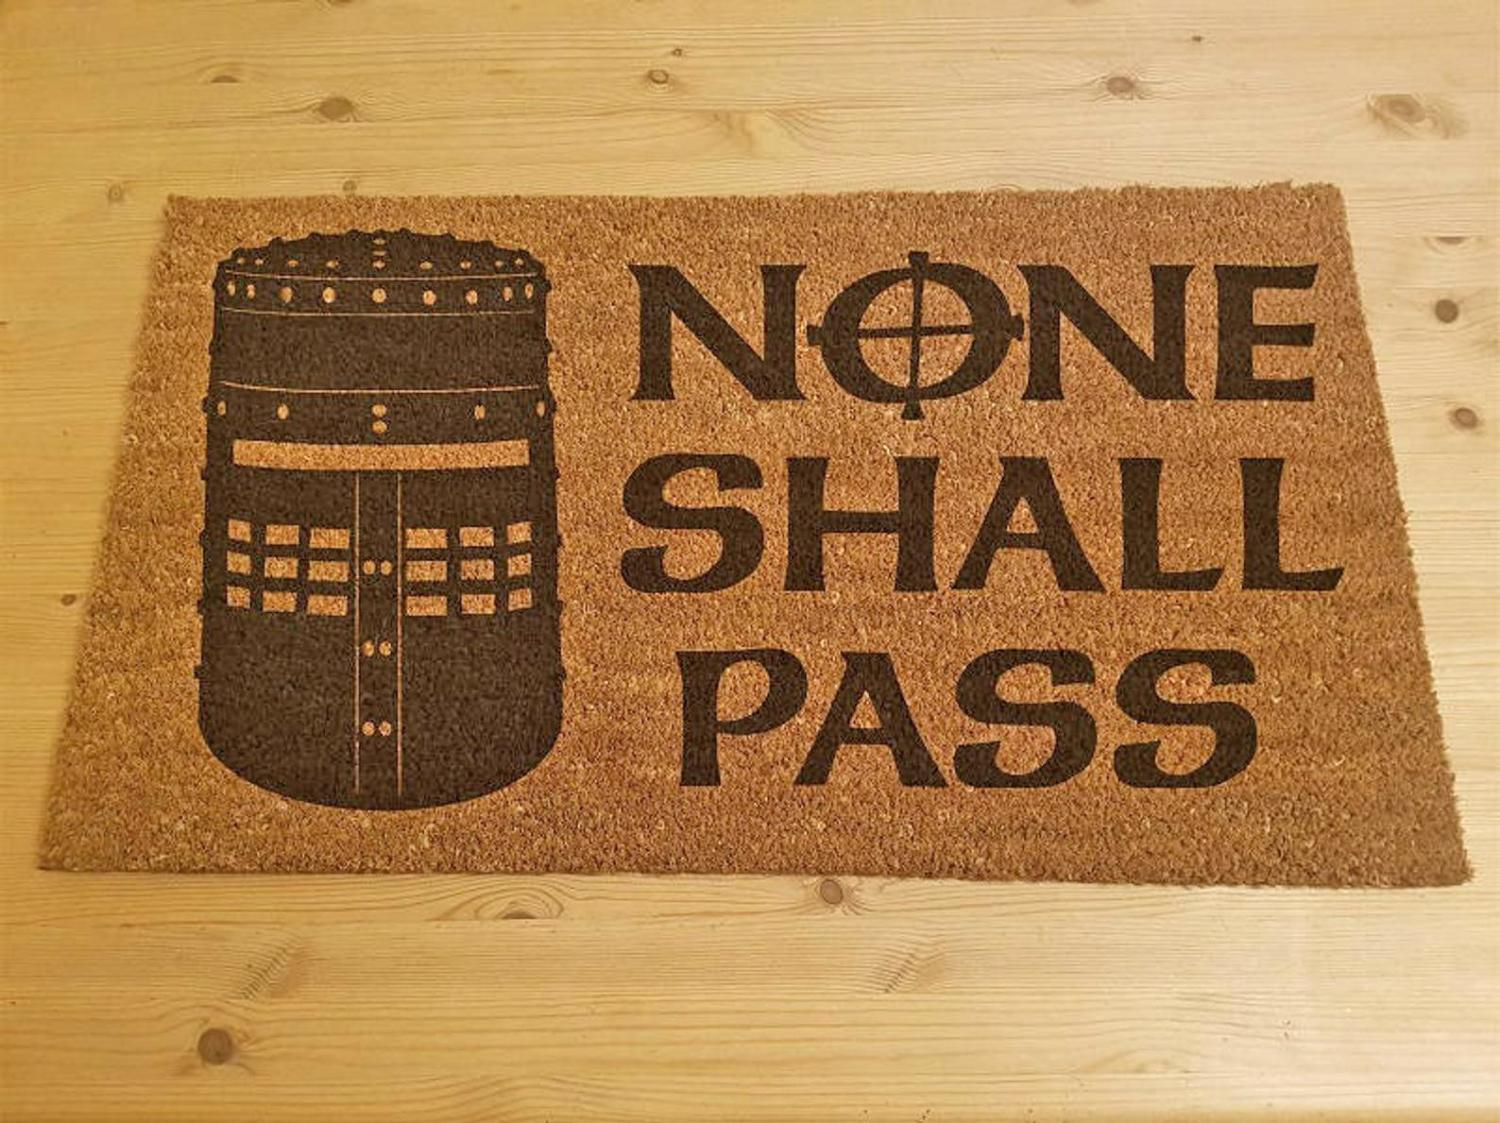 Monty Python Doormat - None shall pass Holy Grail funny doormat - None Shall Pass doormat